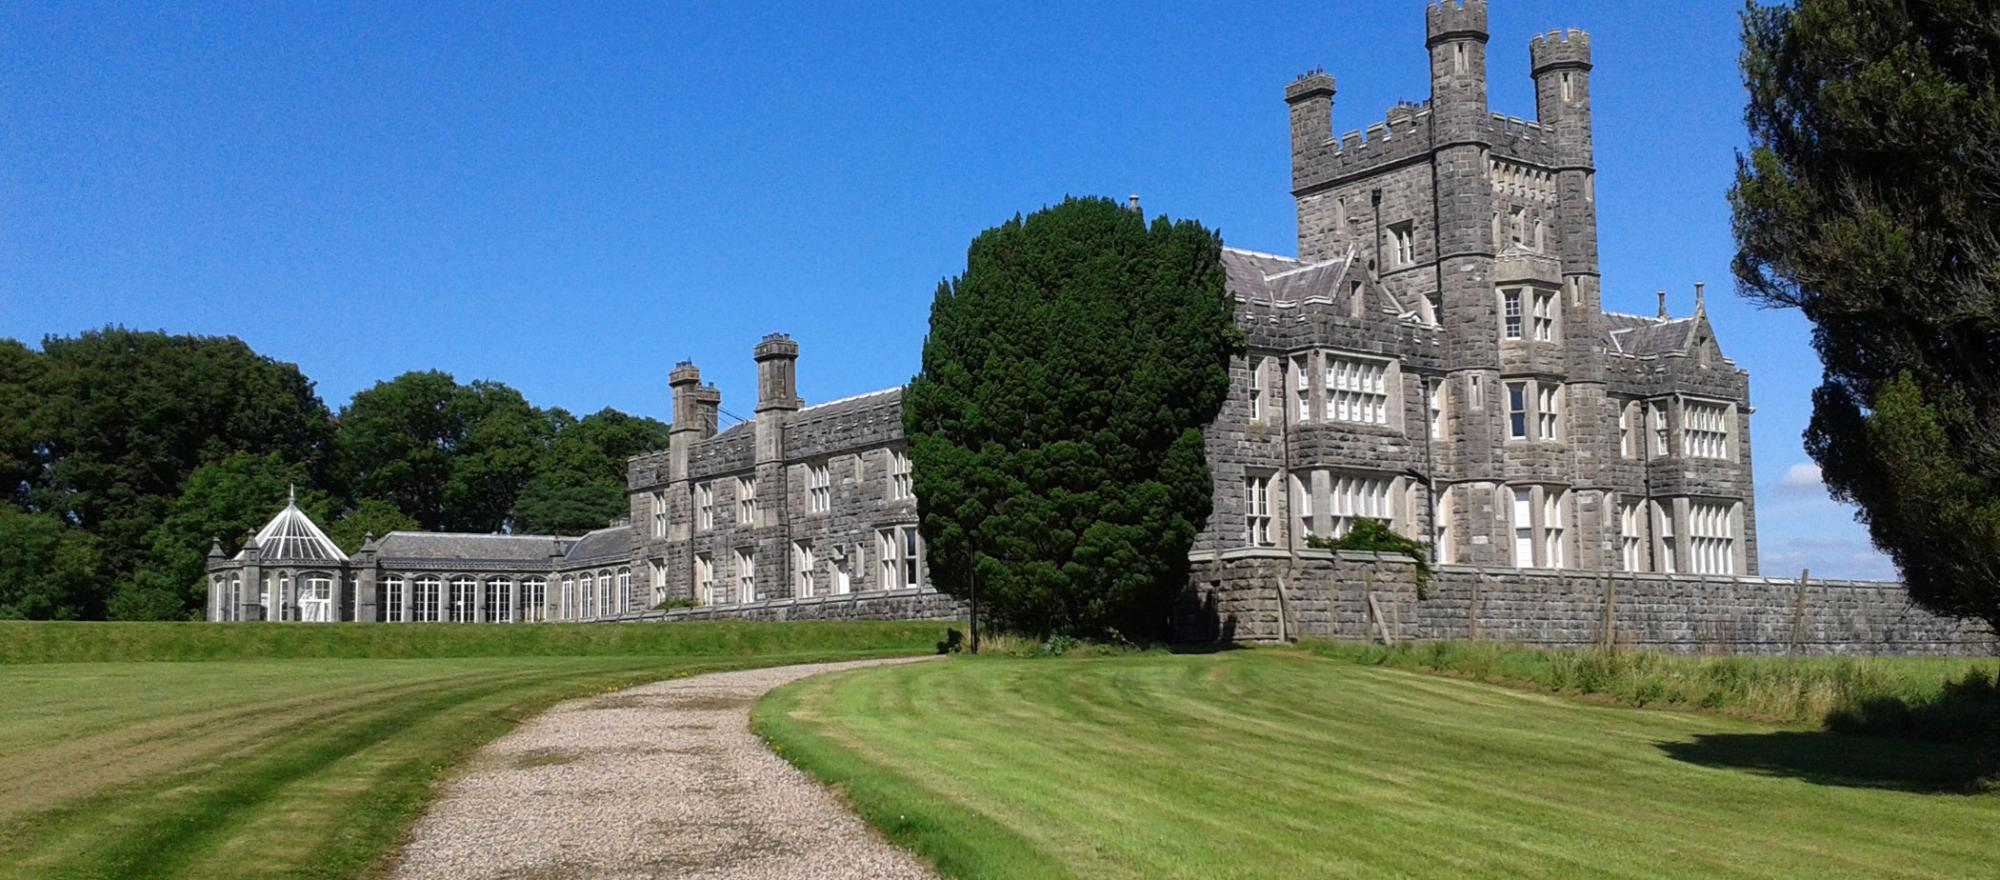 Lord Erne's 350-year-old ancestral home